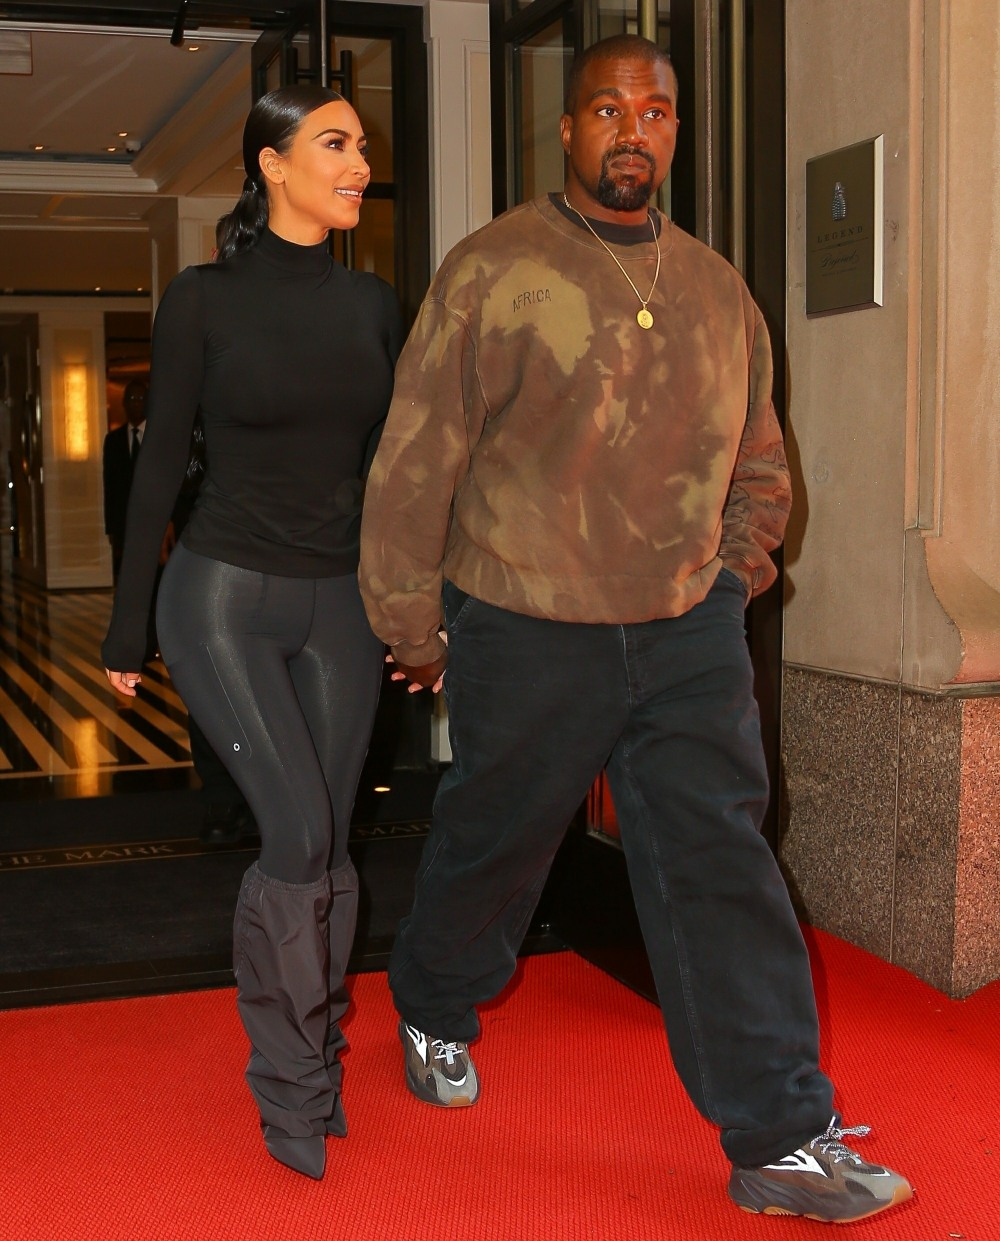 Kim Kardashian and husband Kanye West seen holding hands in NY